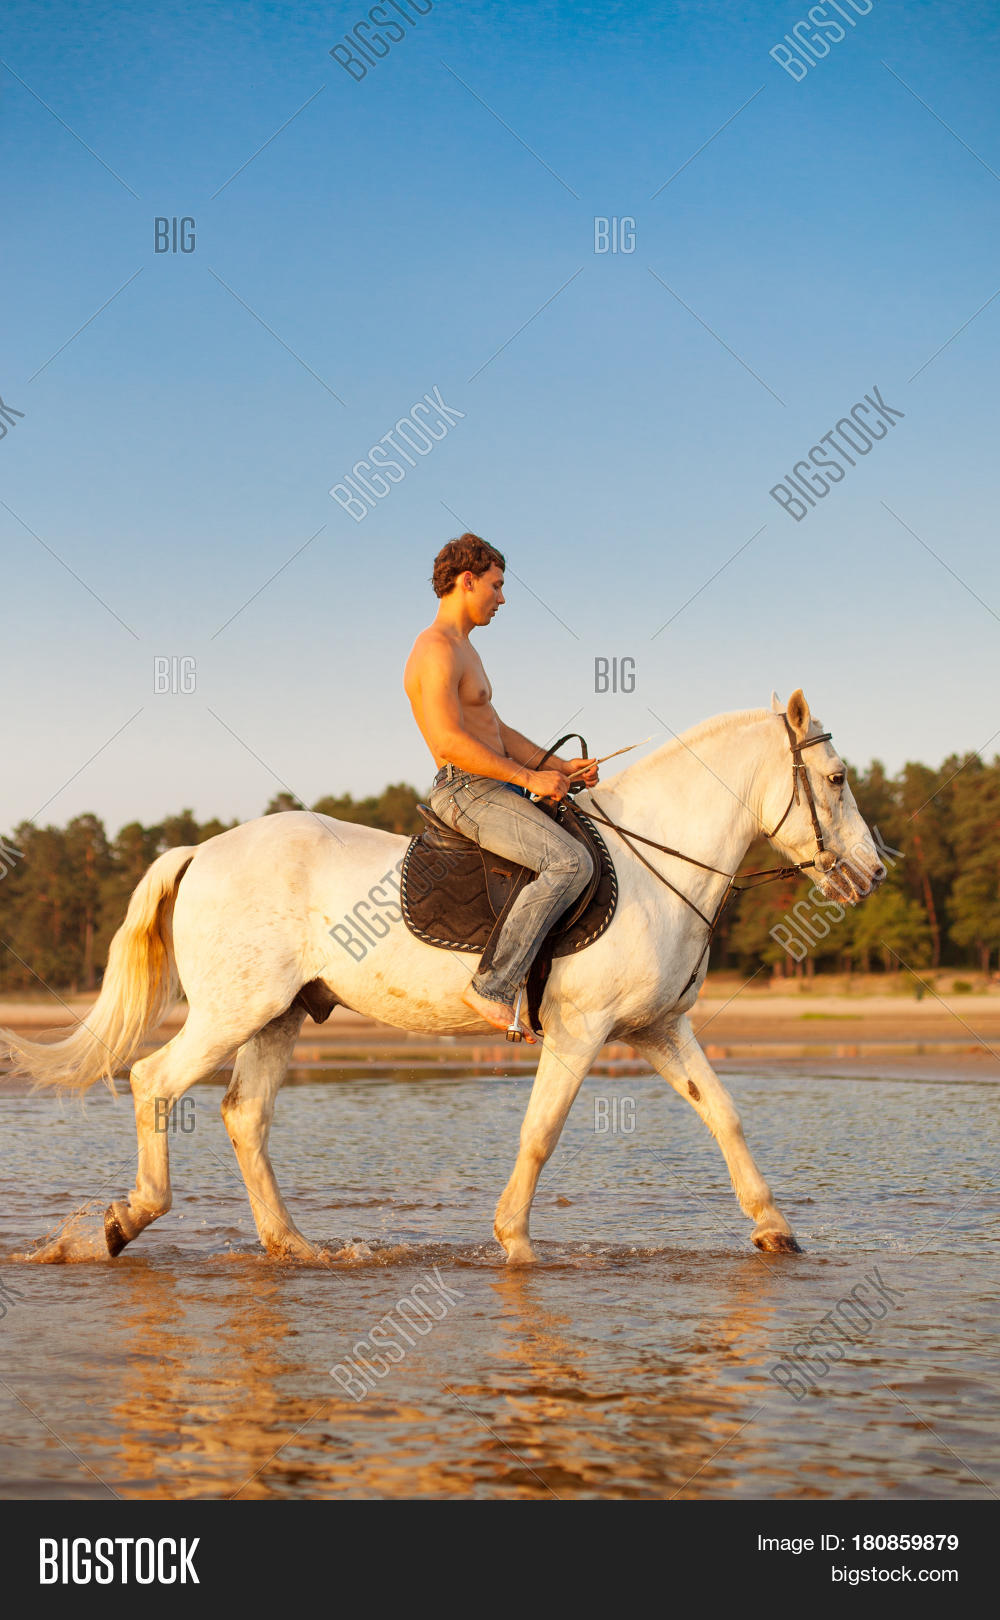 Macho Man Horse On Image & Photo (Free Trial) | Bigstock